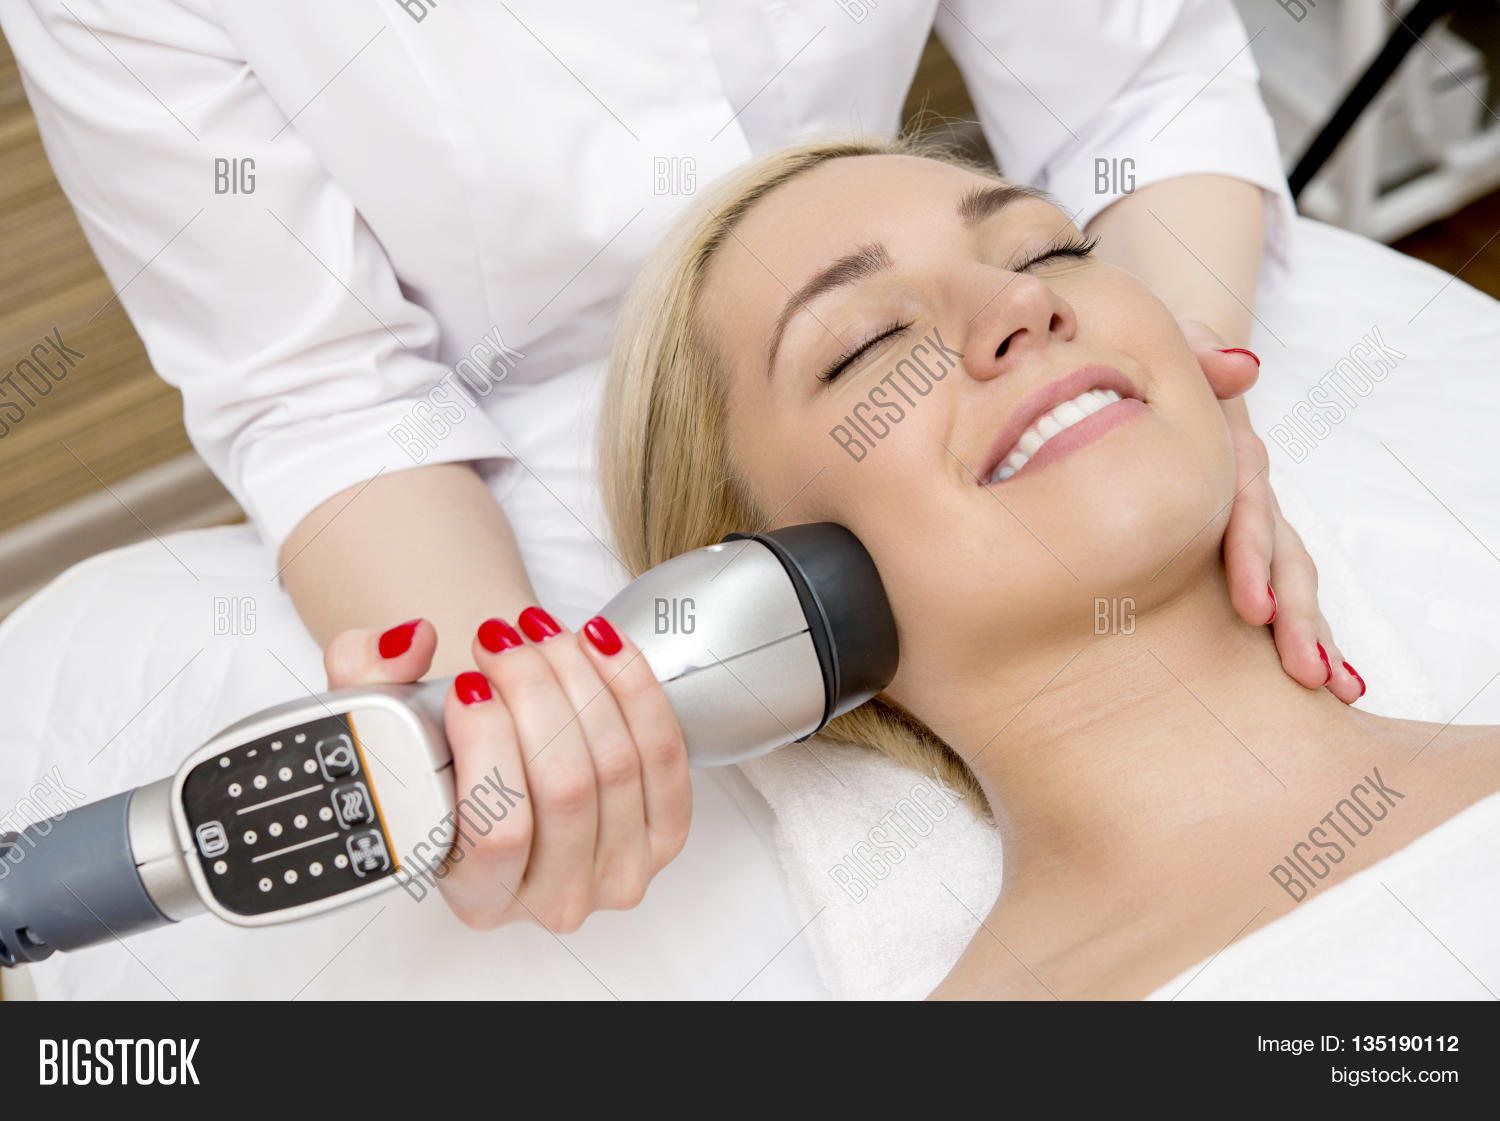 Female taking a facial massage in the spa salon